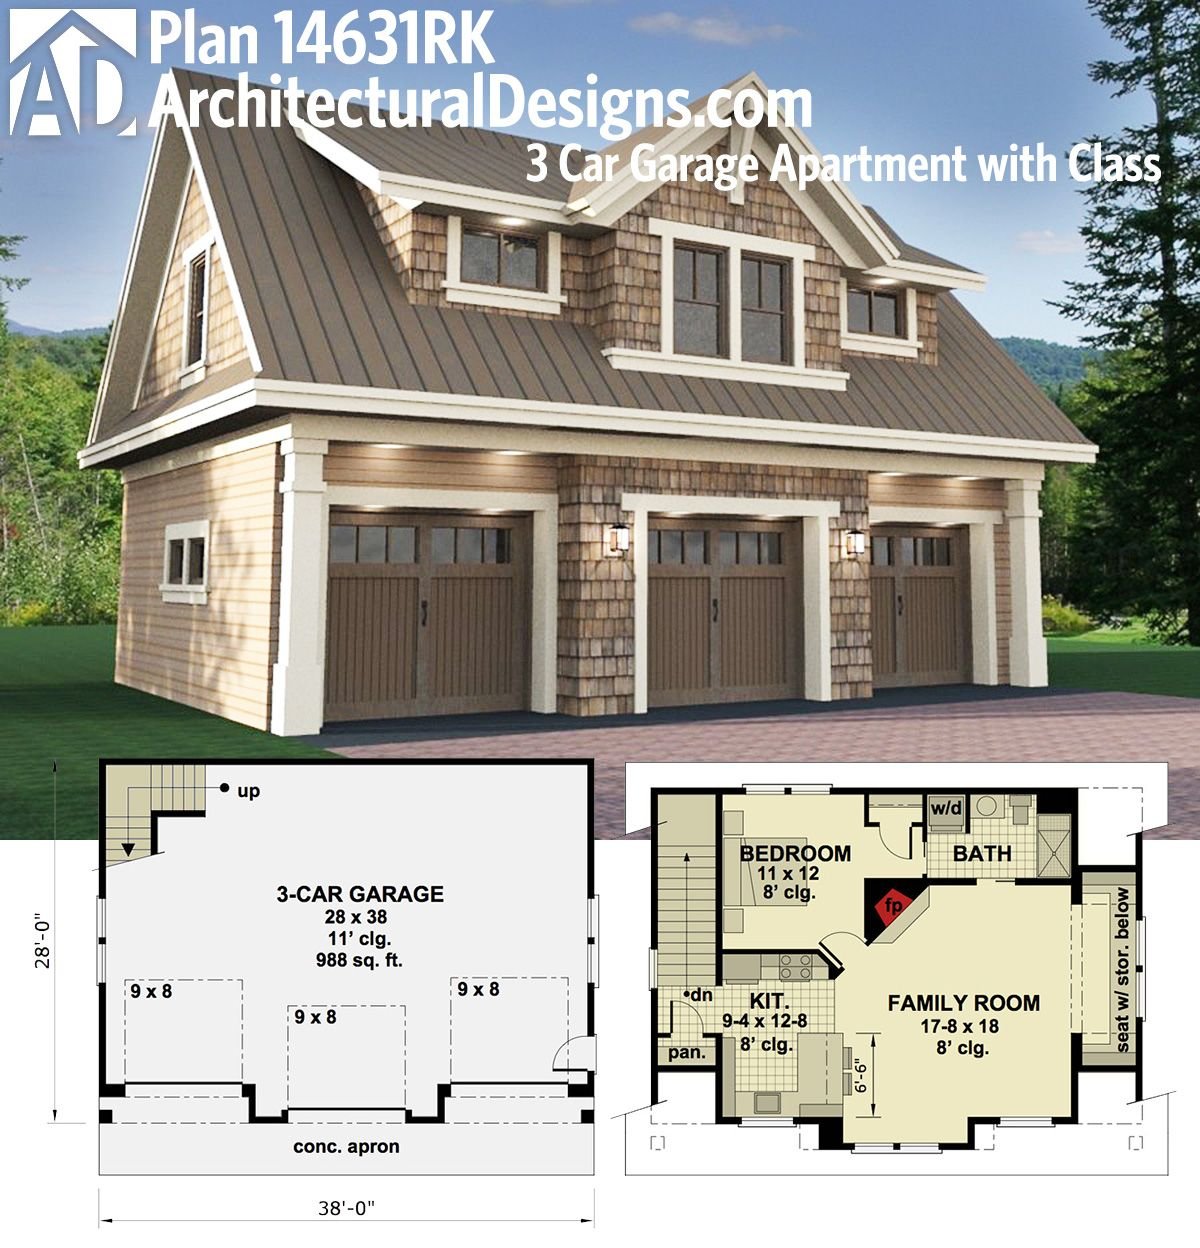 Plan 14631rk 3 car garage apartment with class carriage for House plans with loft over garage